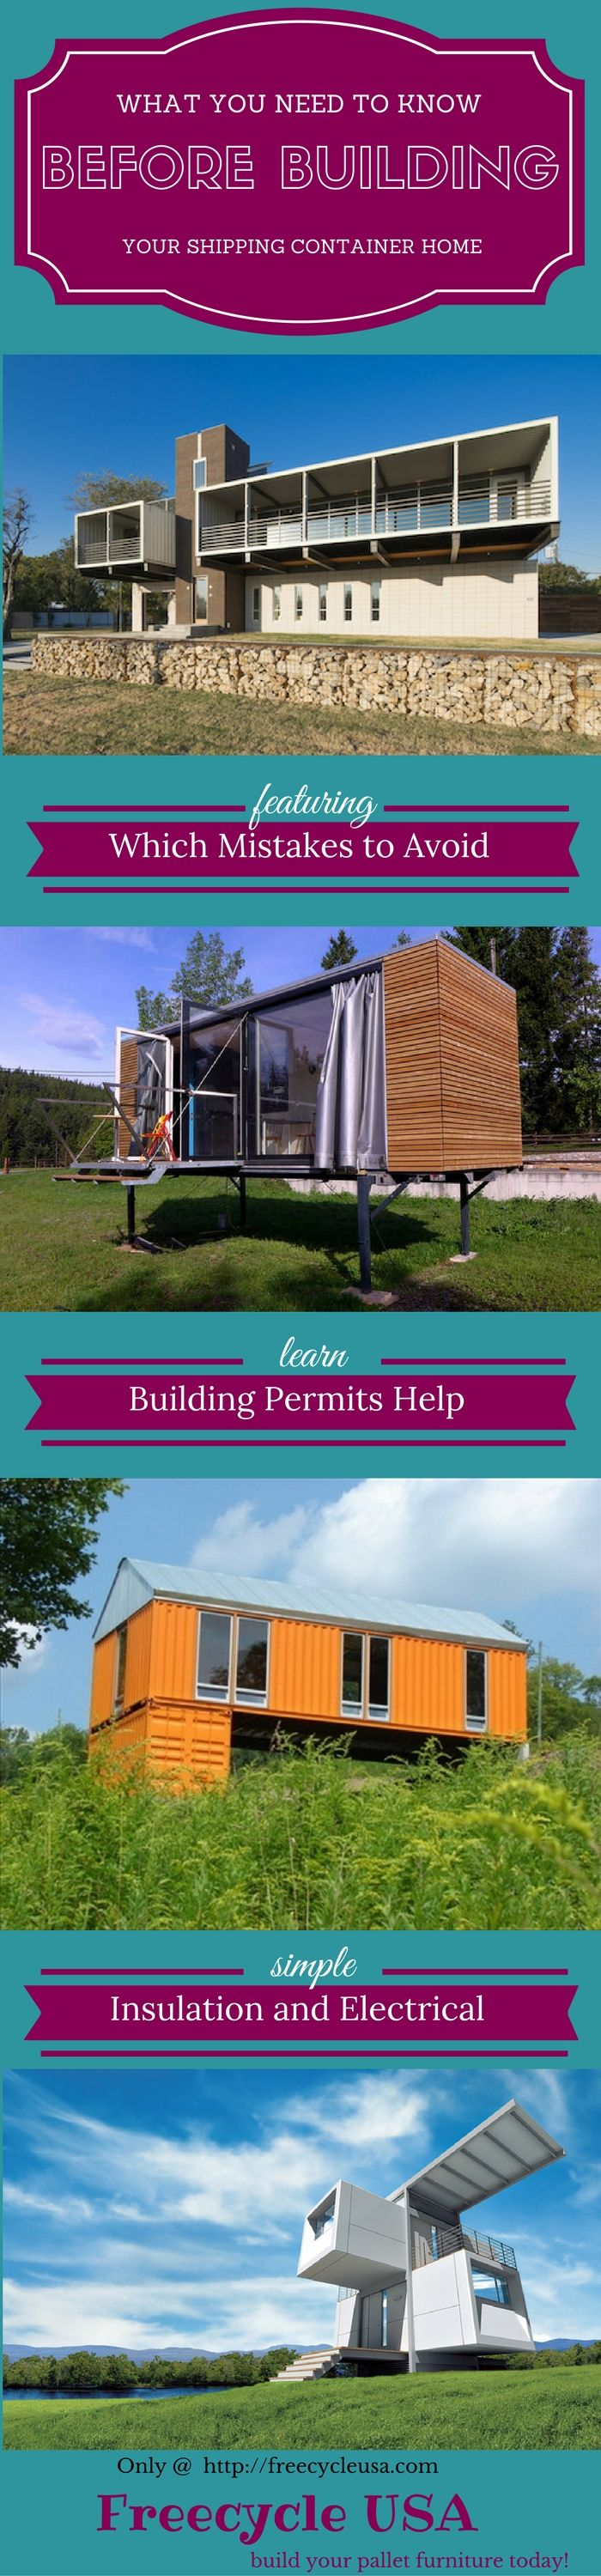 How To Build Your Own Shipping Container Home When it comes to building your own shipping container home there are many things we need to consider. I imagine you've already searched for various other guides online, however many of these guides don't contain the crucial information which you need. Most people who want to build …